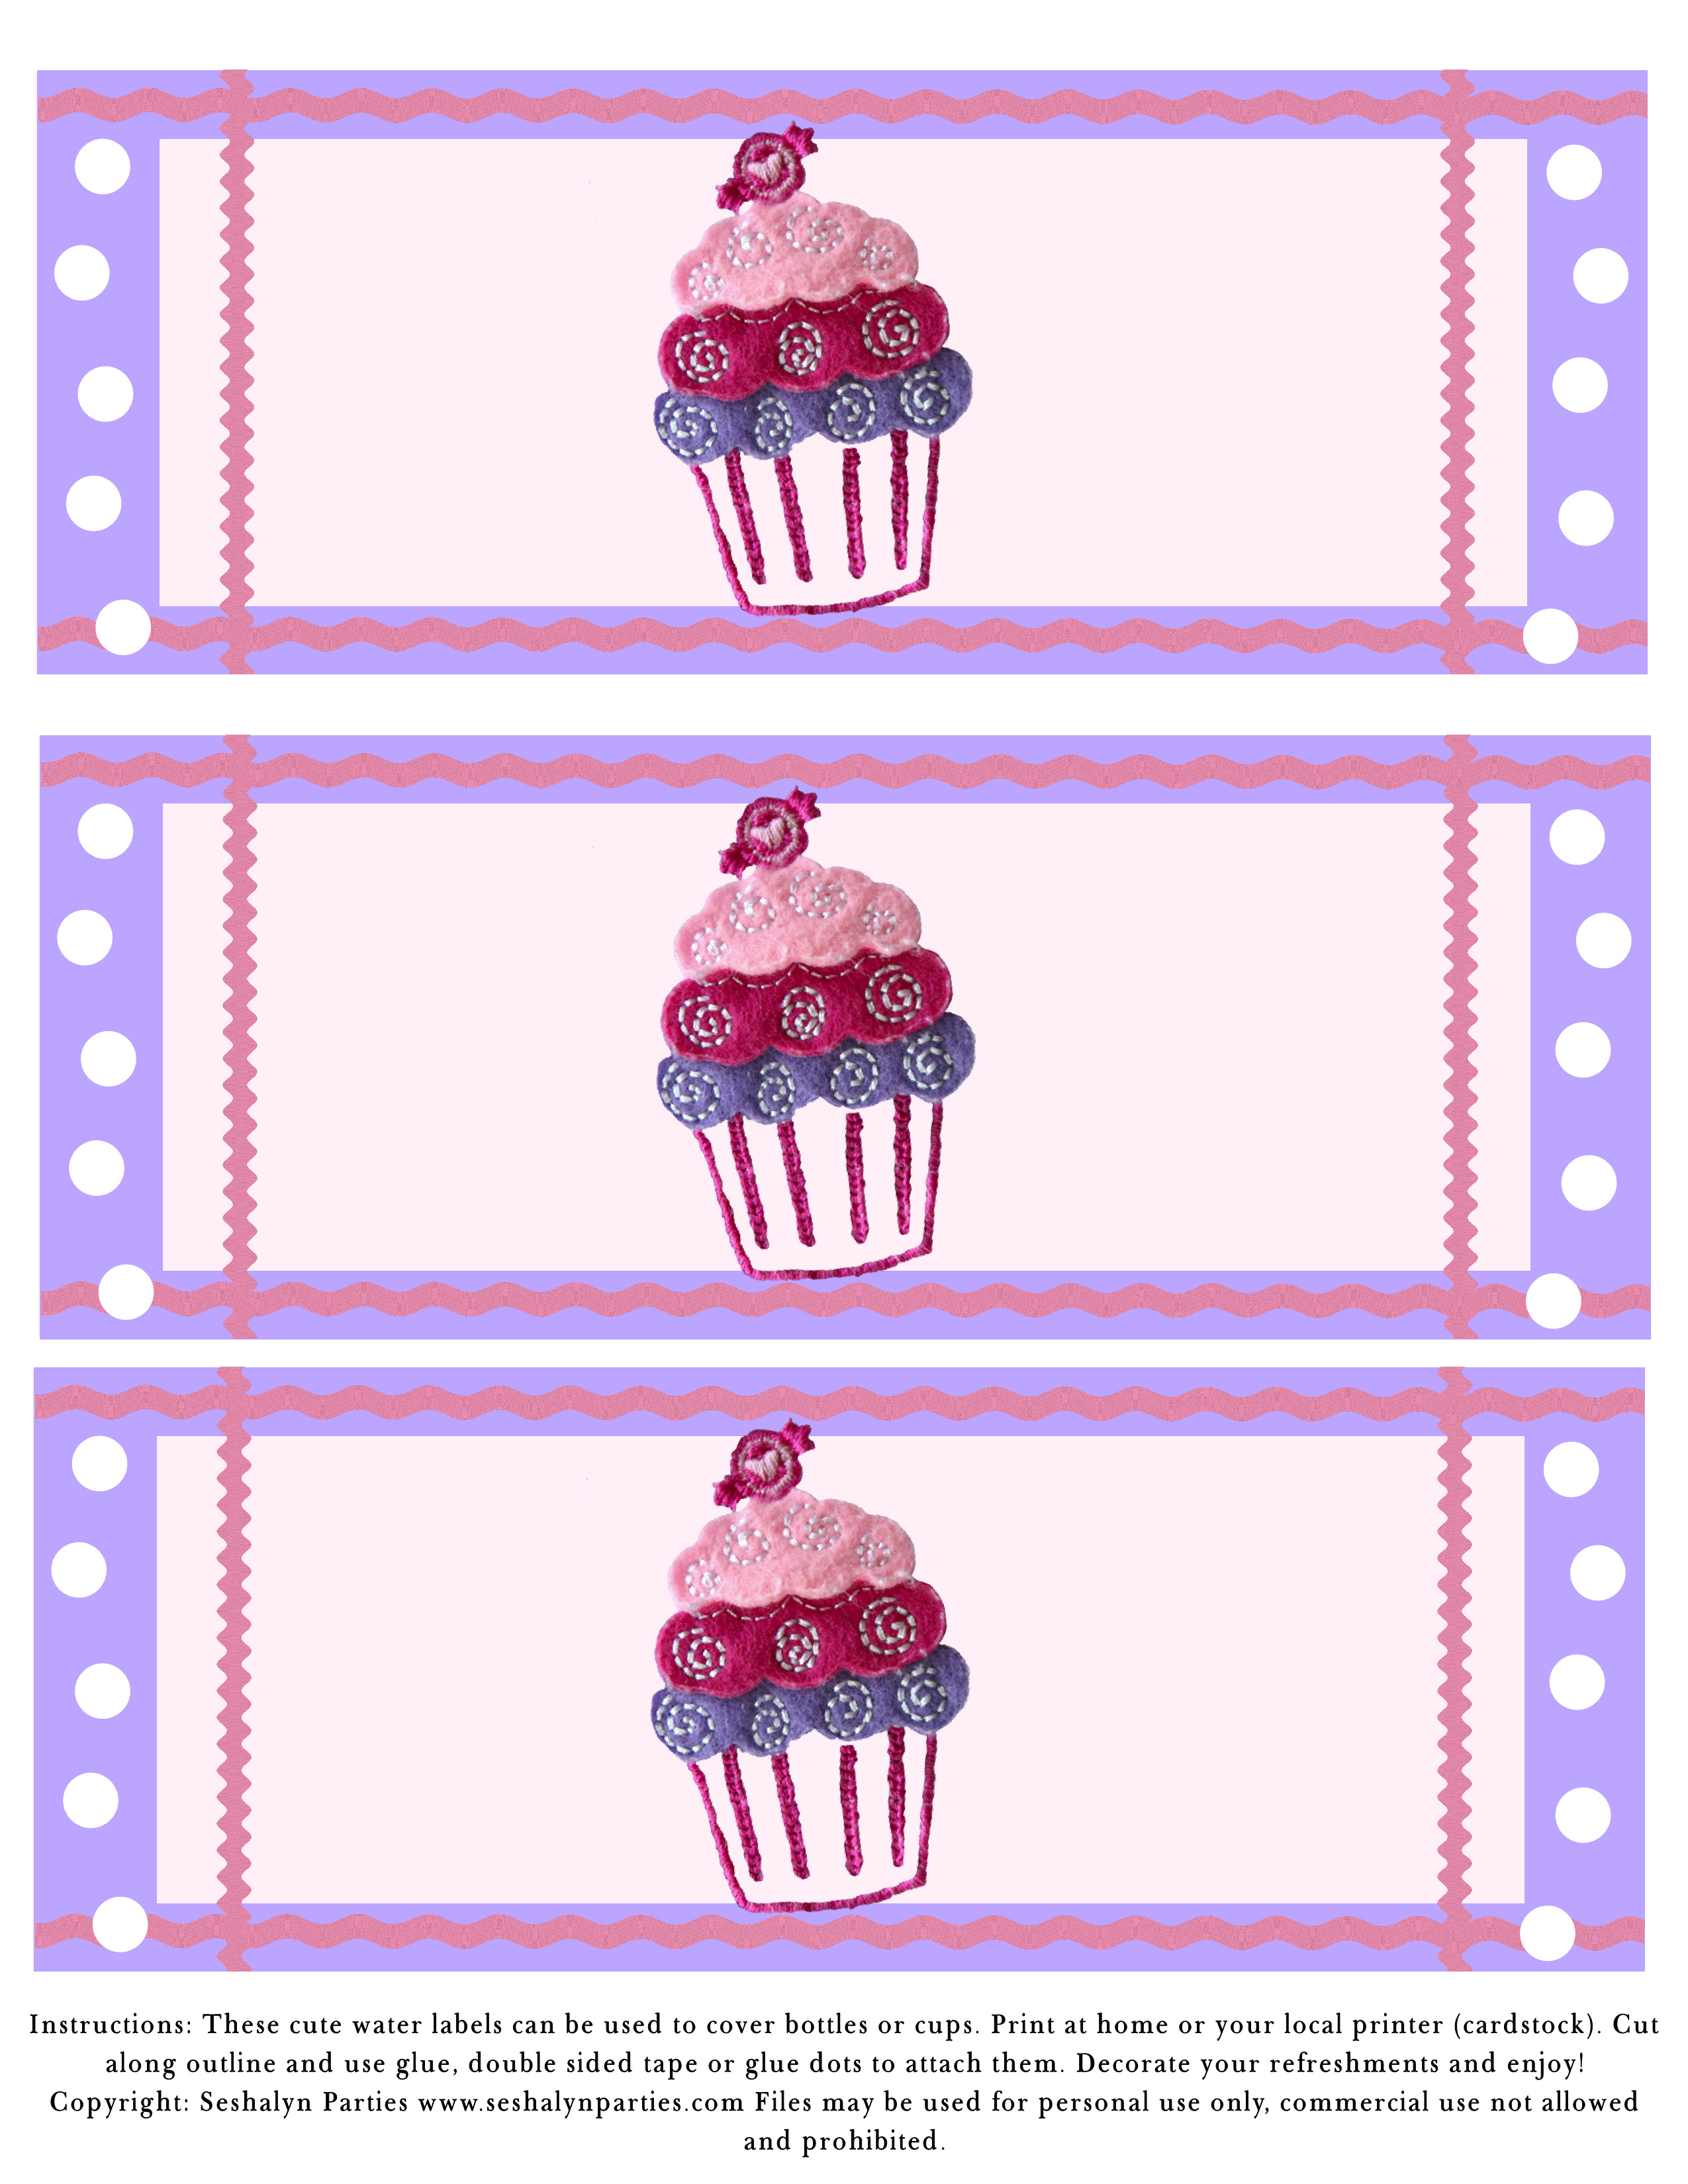 6 Images of Cupcake Theme Party Free Printables